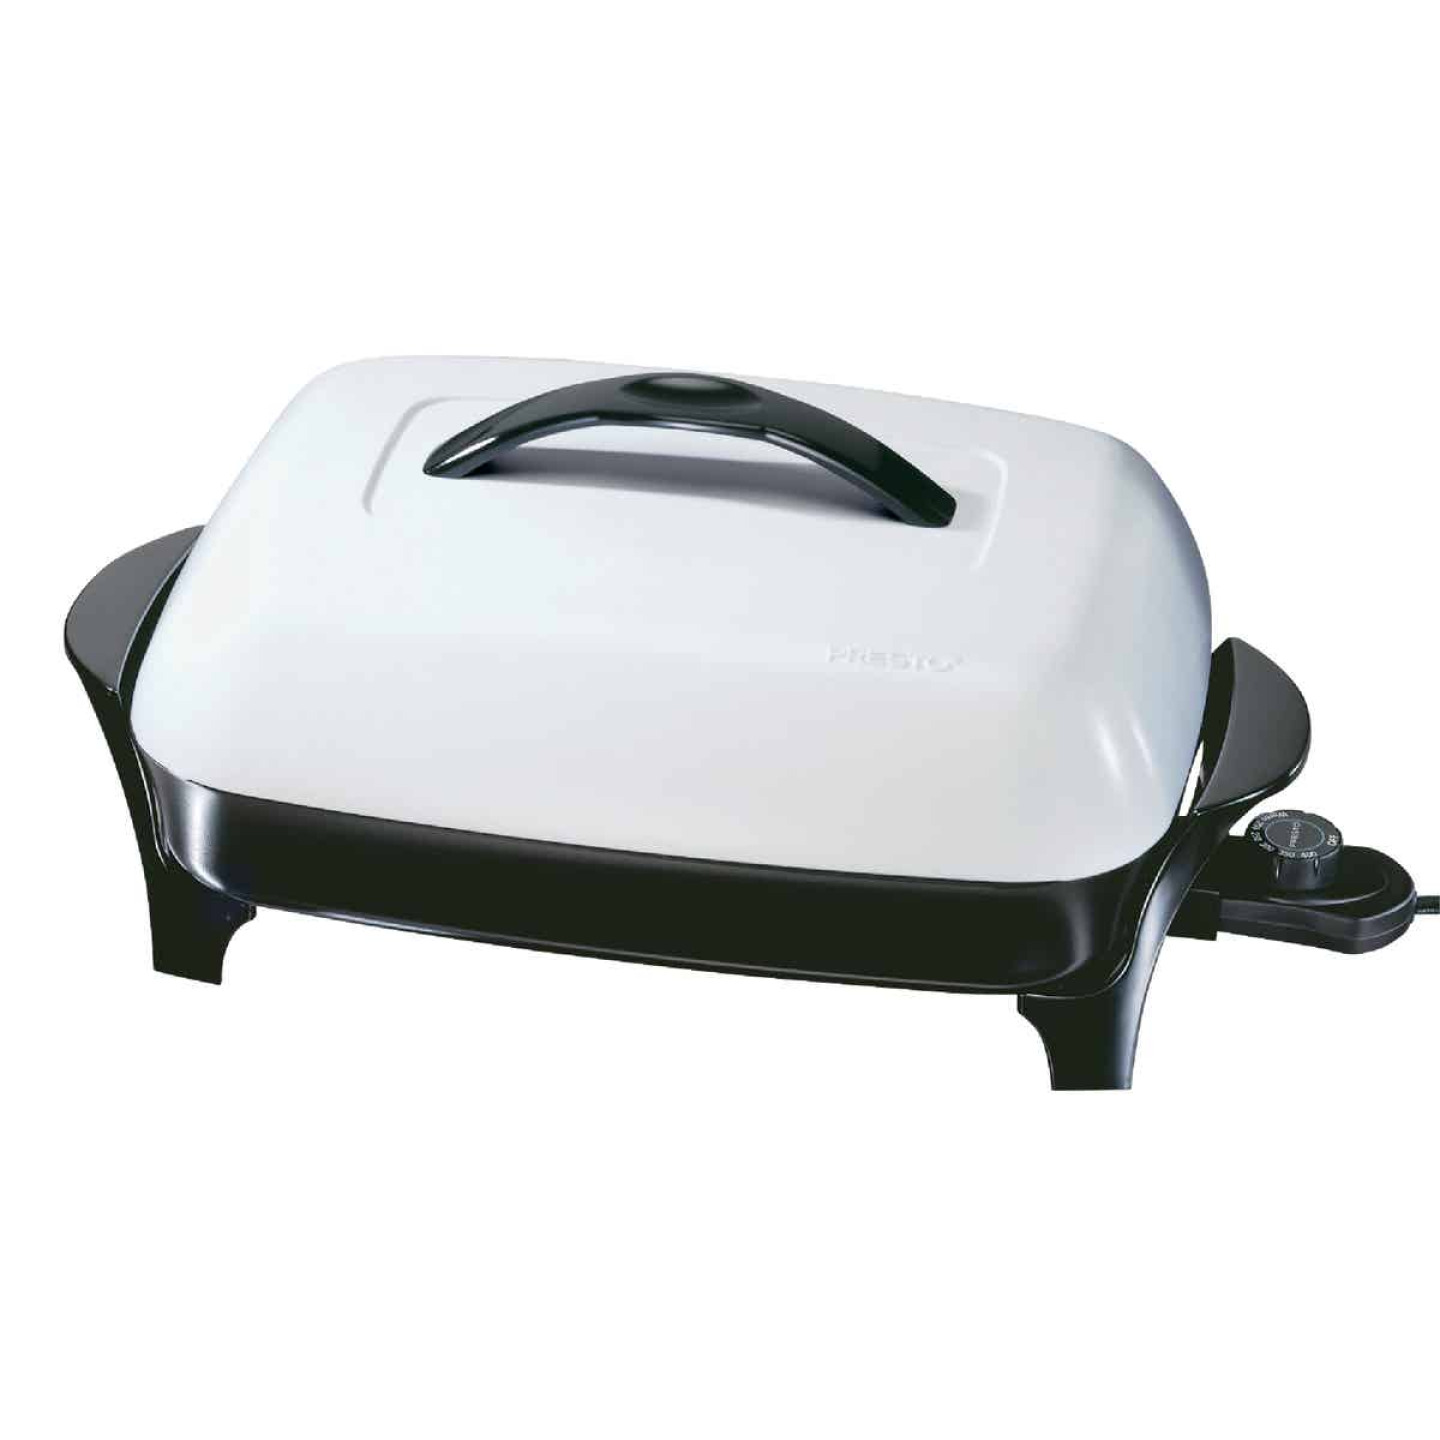 Presto 16 In. Electric Skillet Image 1